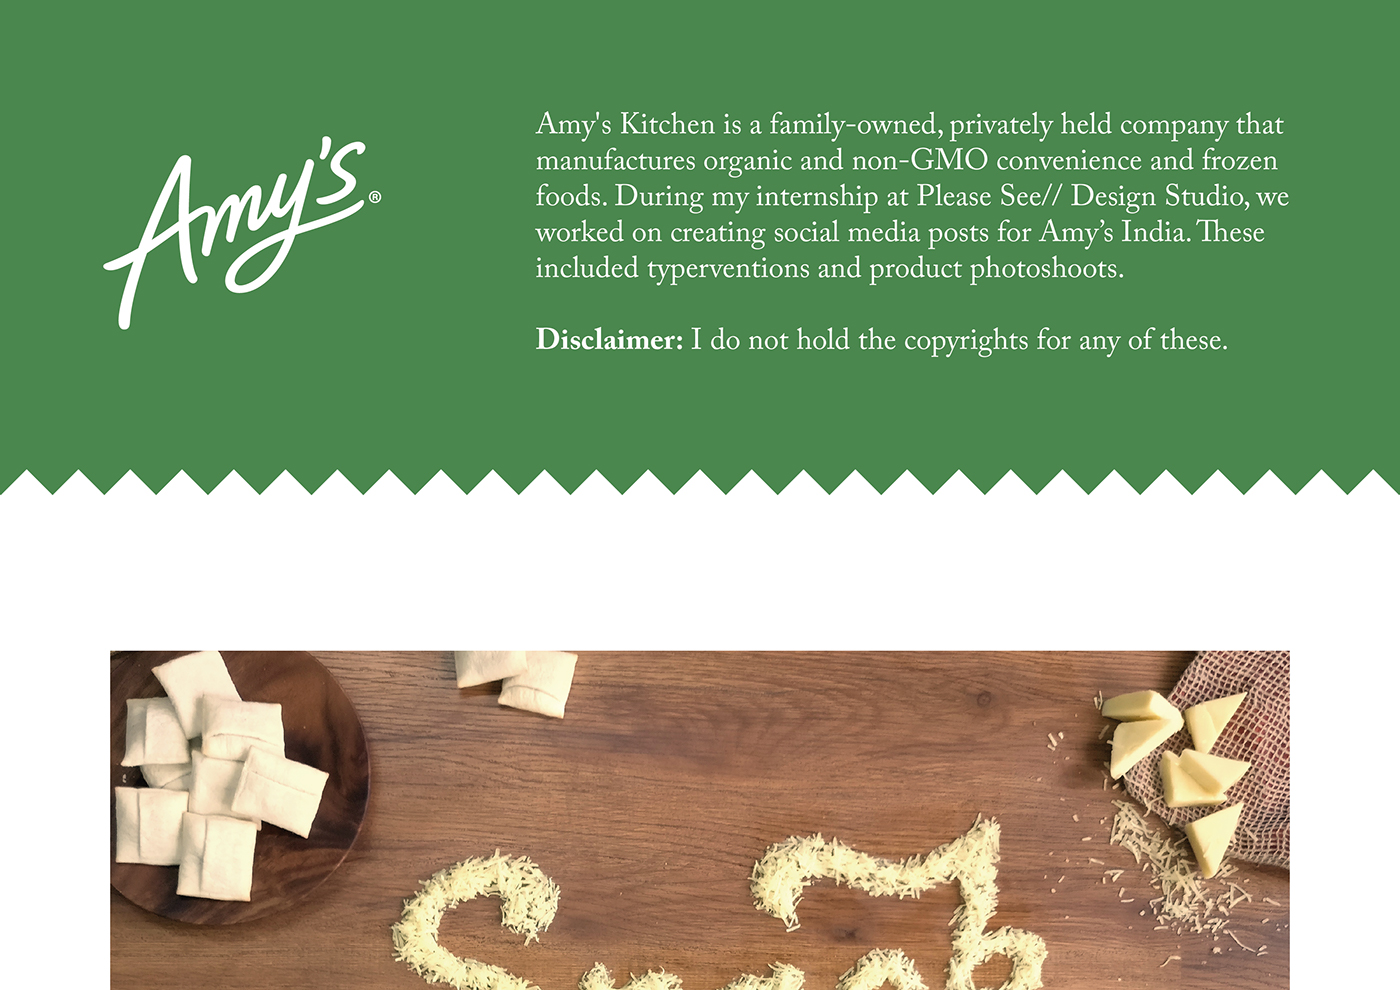 typervention Food  Product Photography typography   India Cheese amys Amys Kitchen